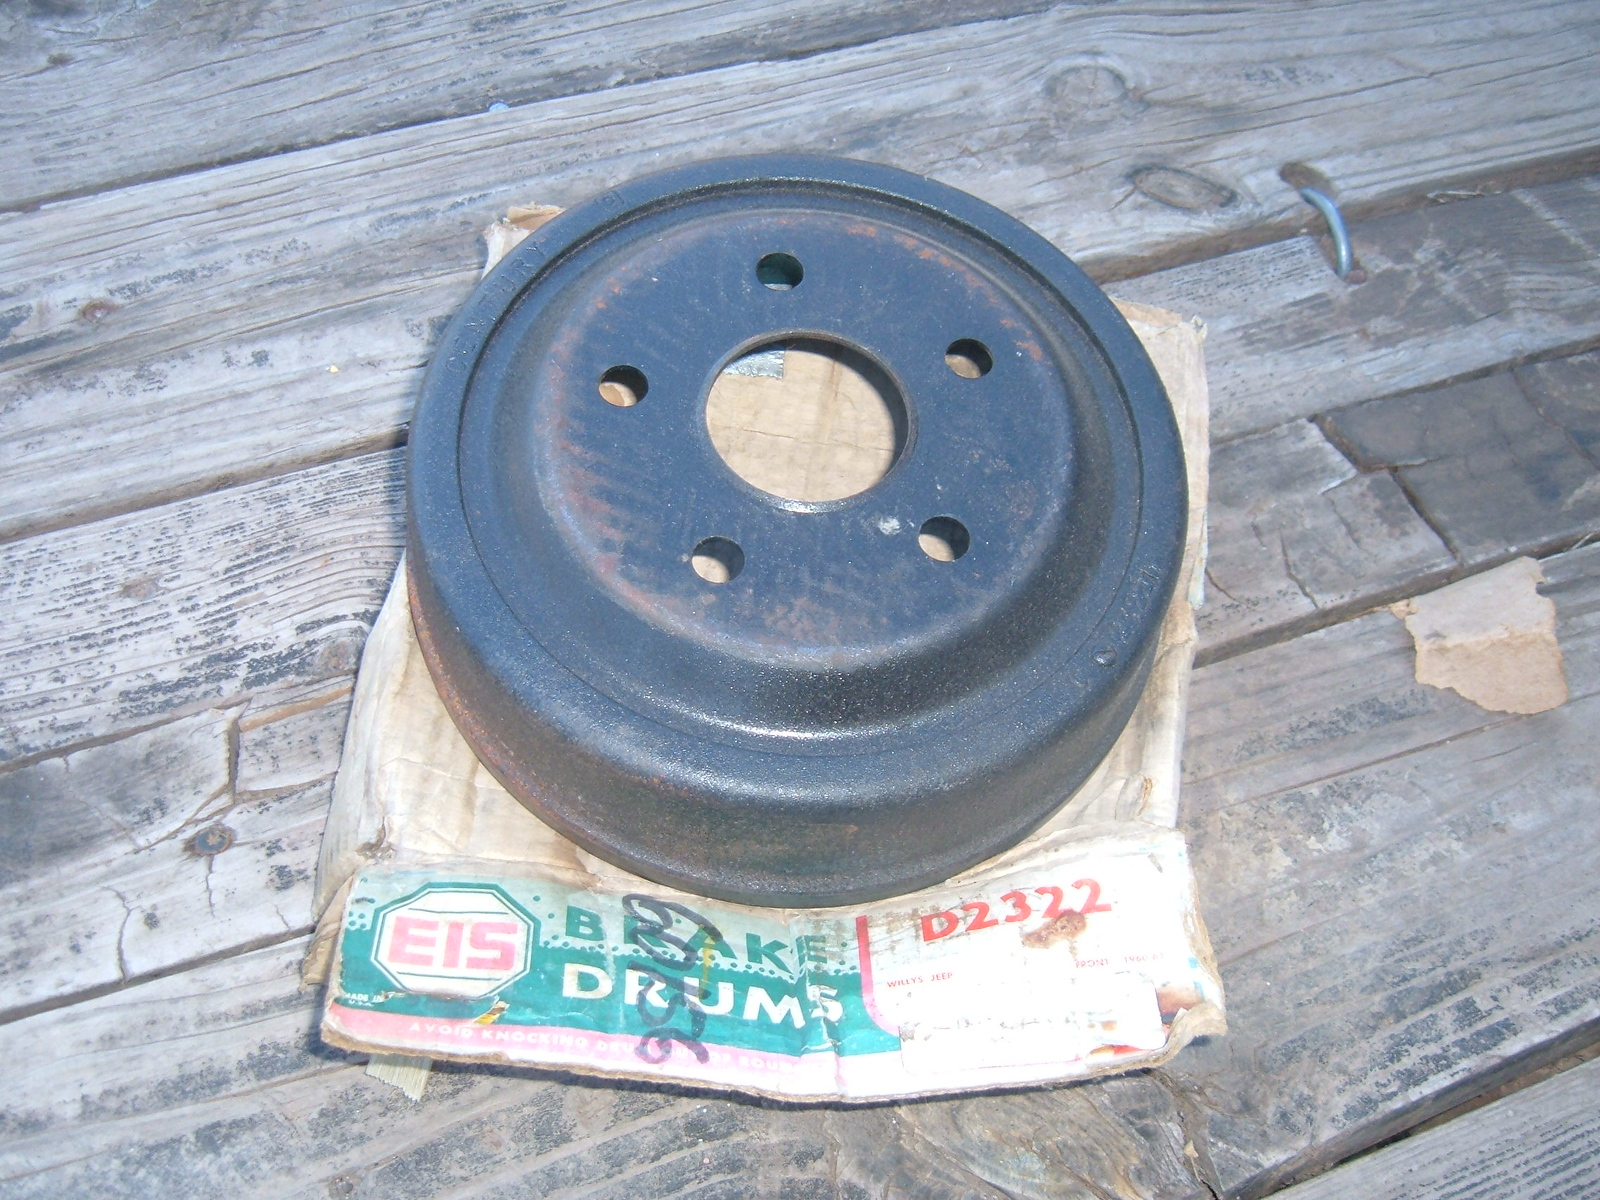 1960 1961 willys jeep front brake drum new C-2252 (z 2252)